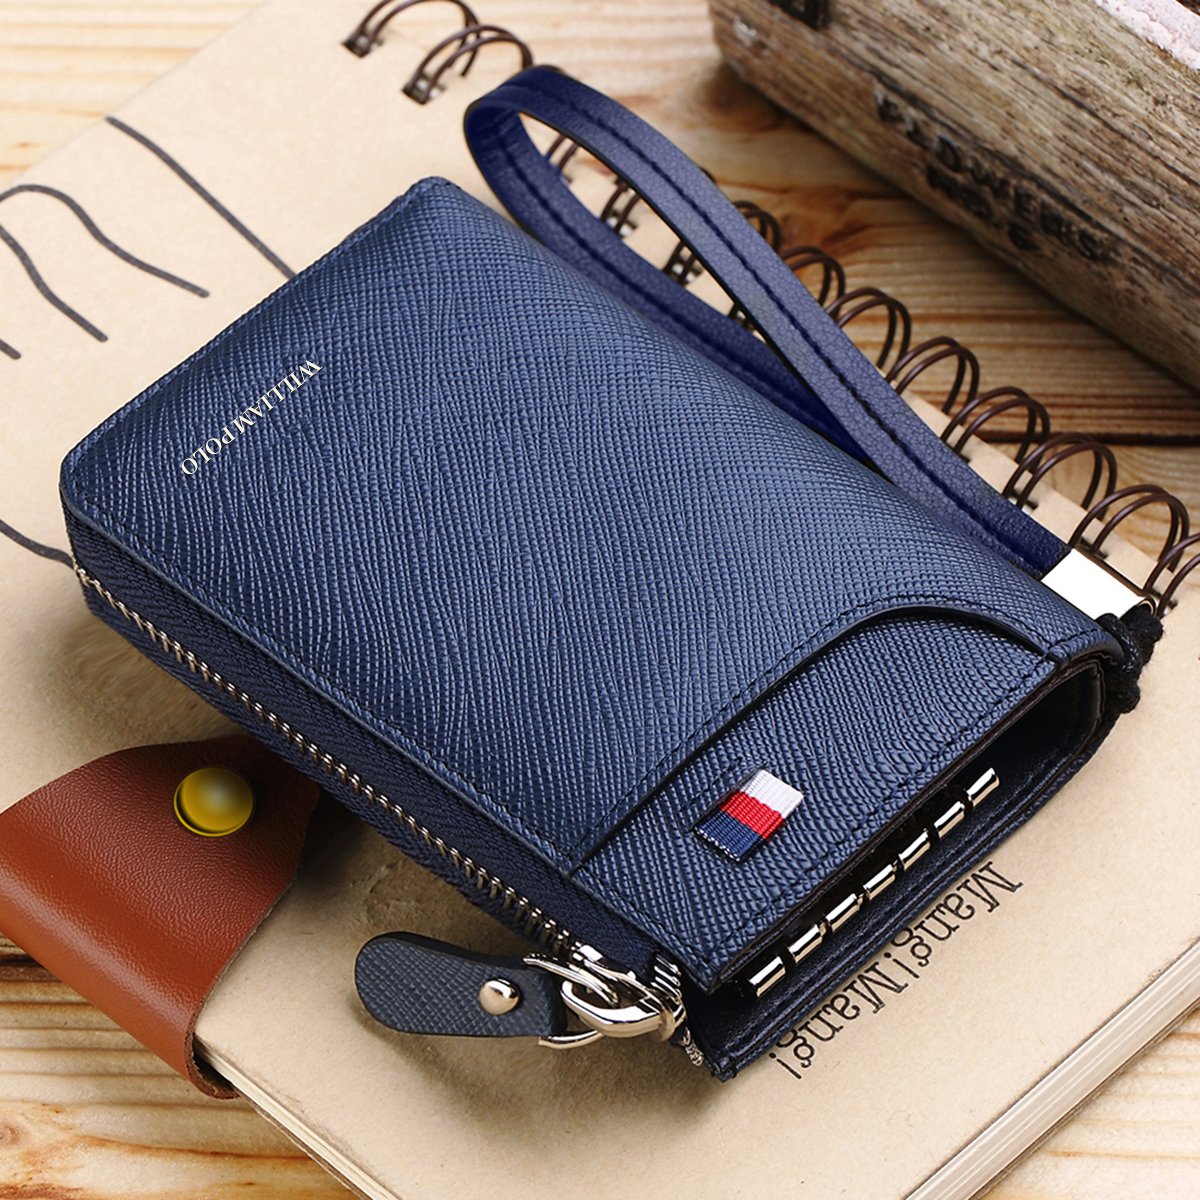 WilliamPOLO Genuine Leather Key Case Wallet Keychain Organizer Car Key Holder Credit Card Cash Purse Khaki Black Blue Claret